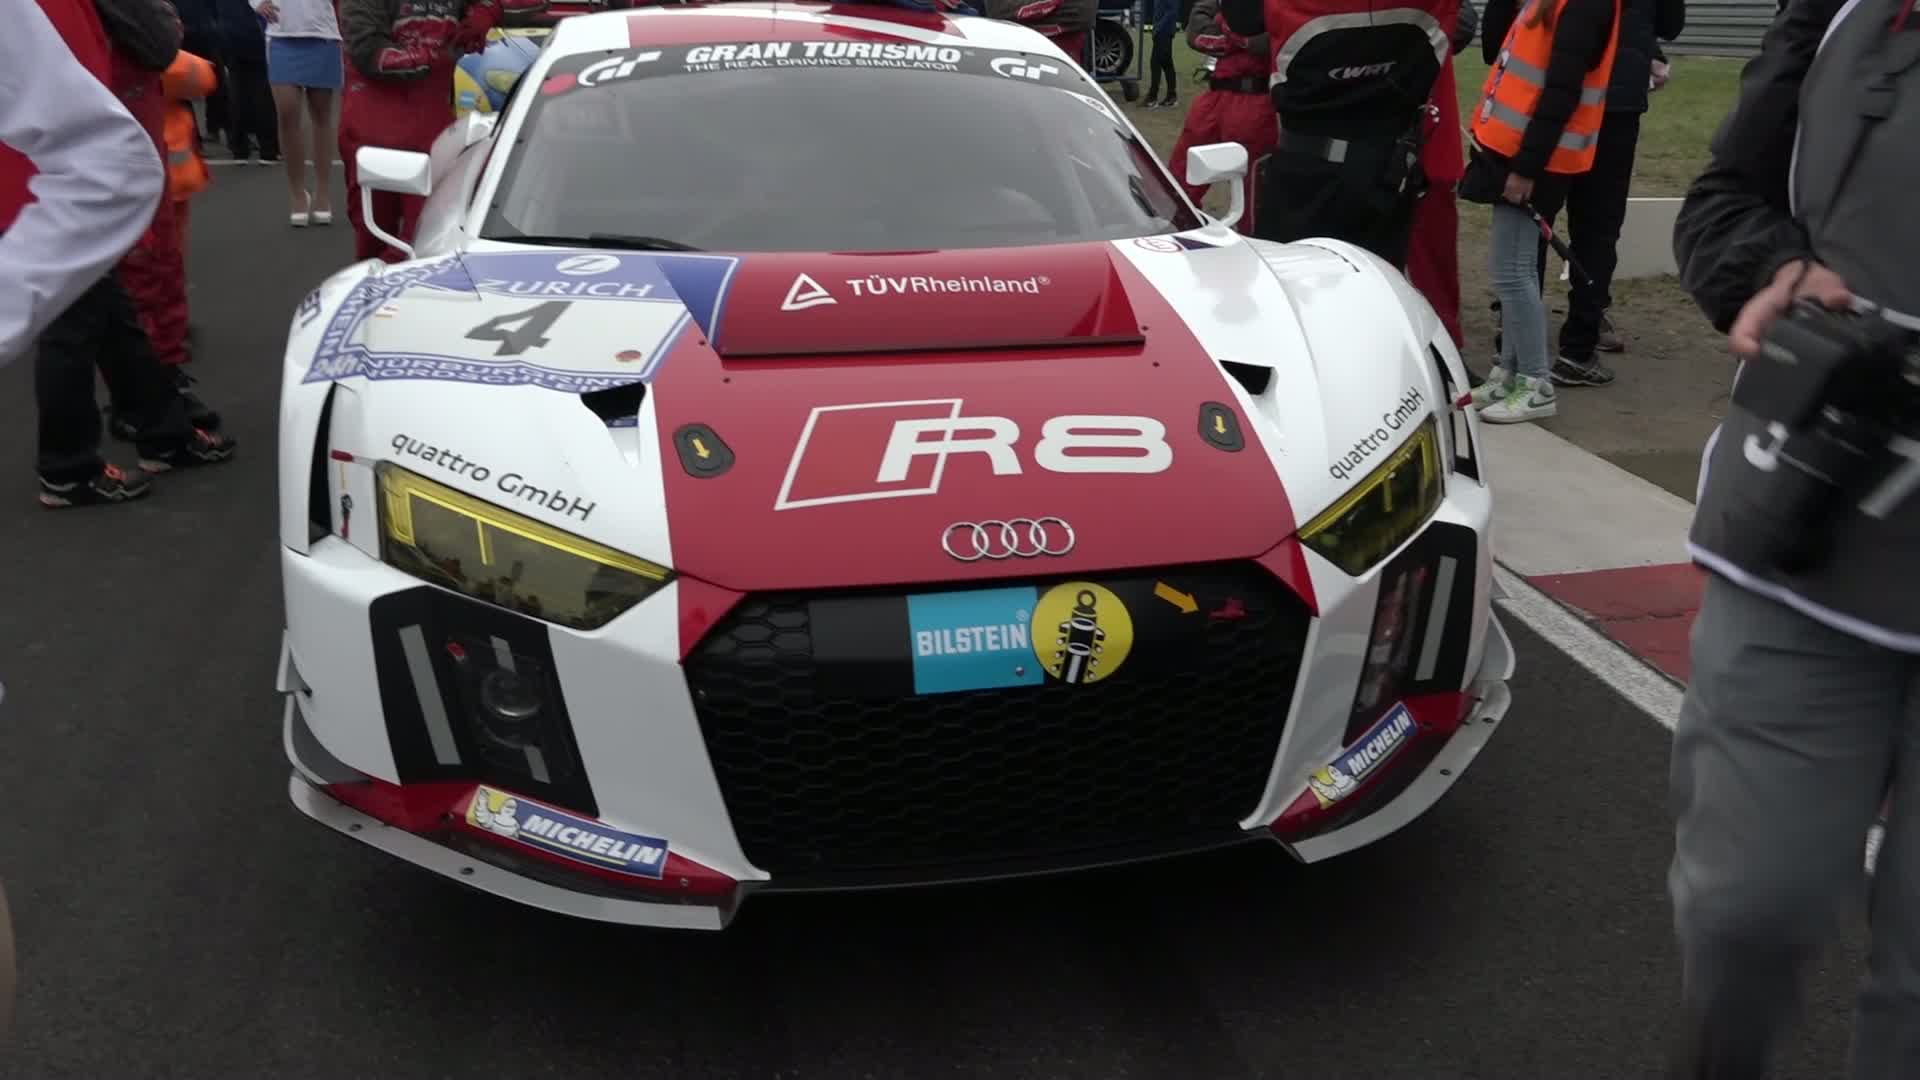 60 Seconds of Audi Sport 26/2015 - 24h Nürburgring, start